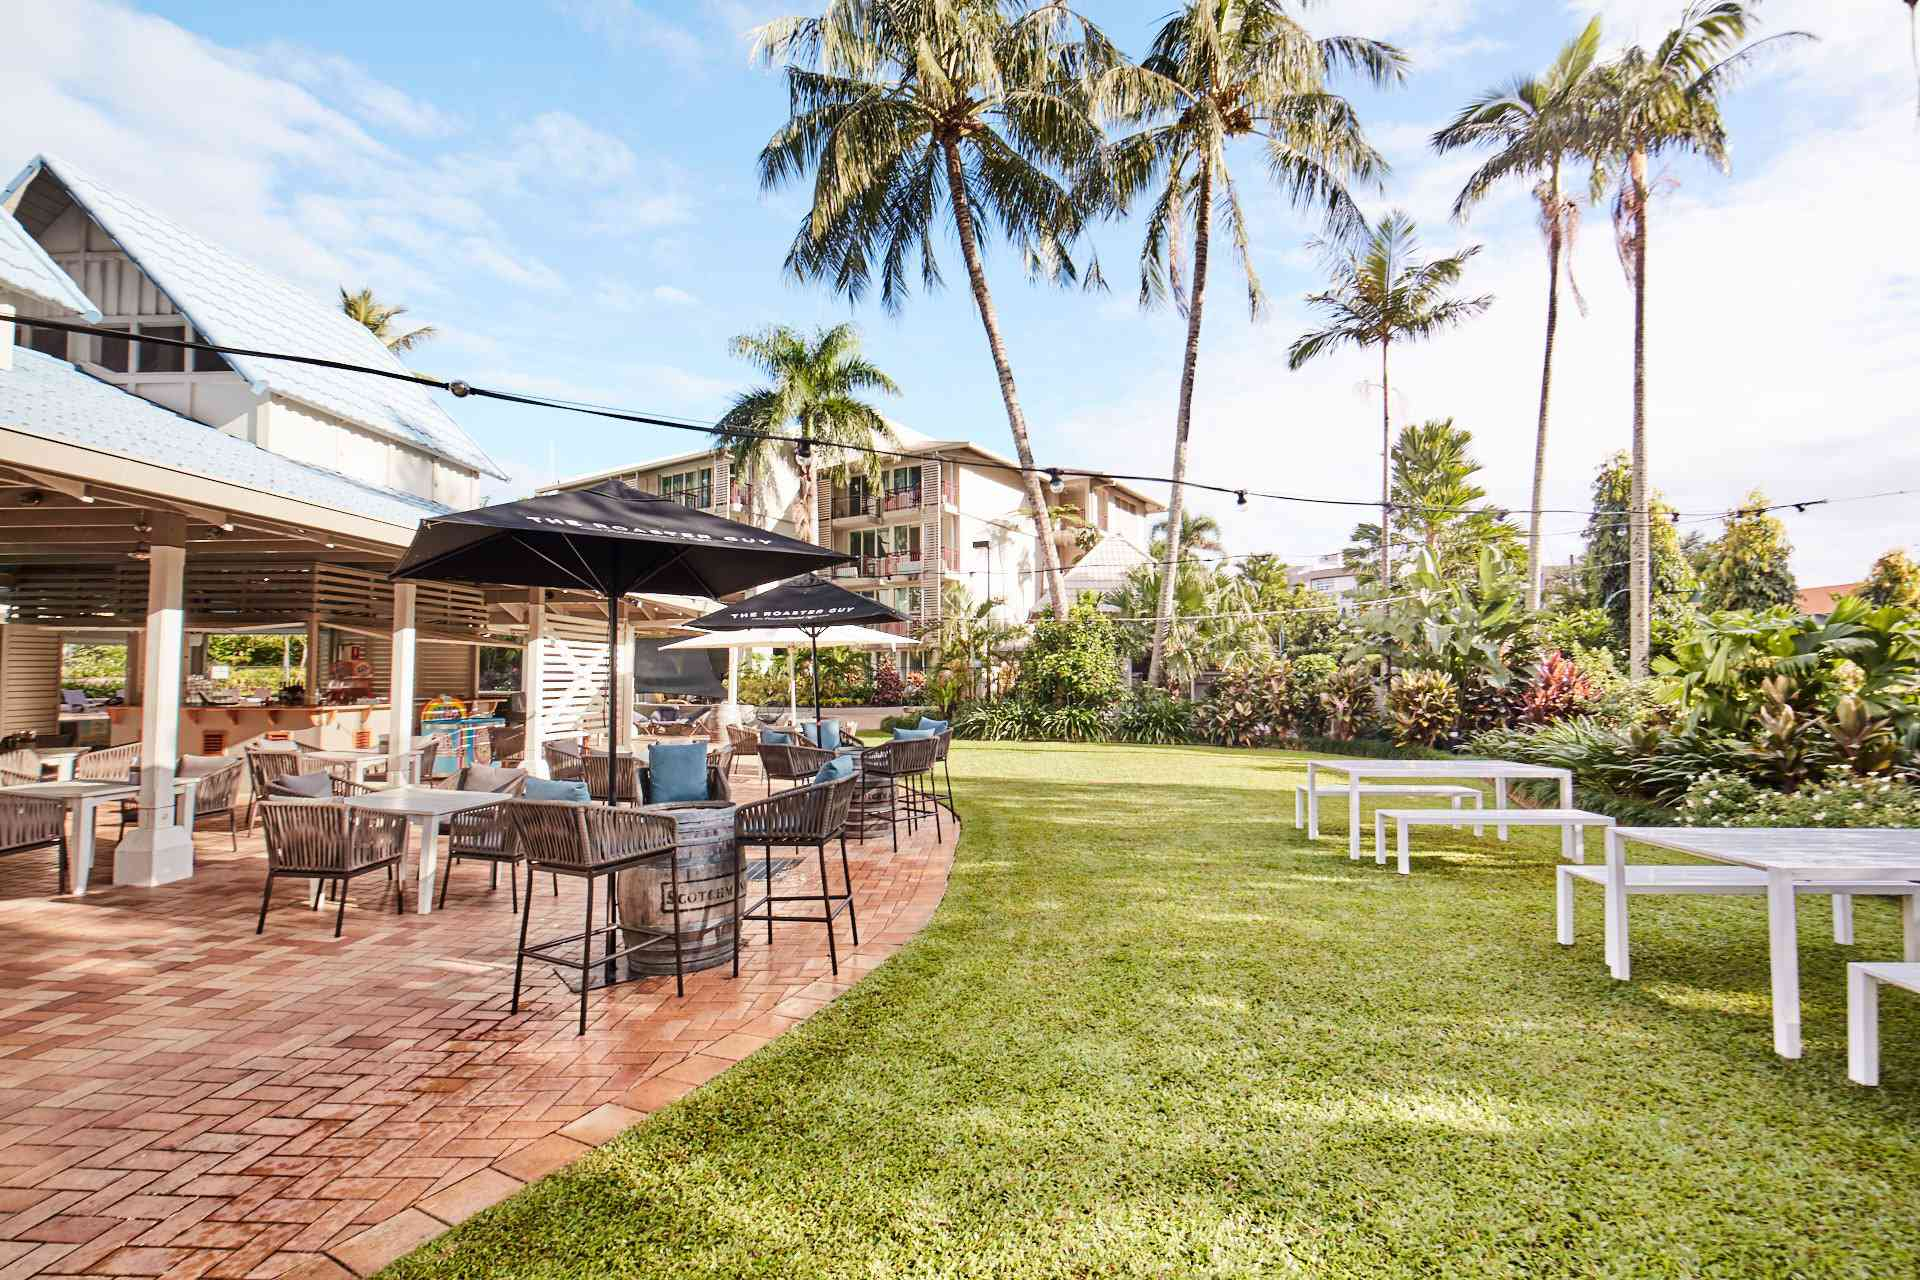 Outdoor dining area with palm trees